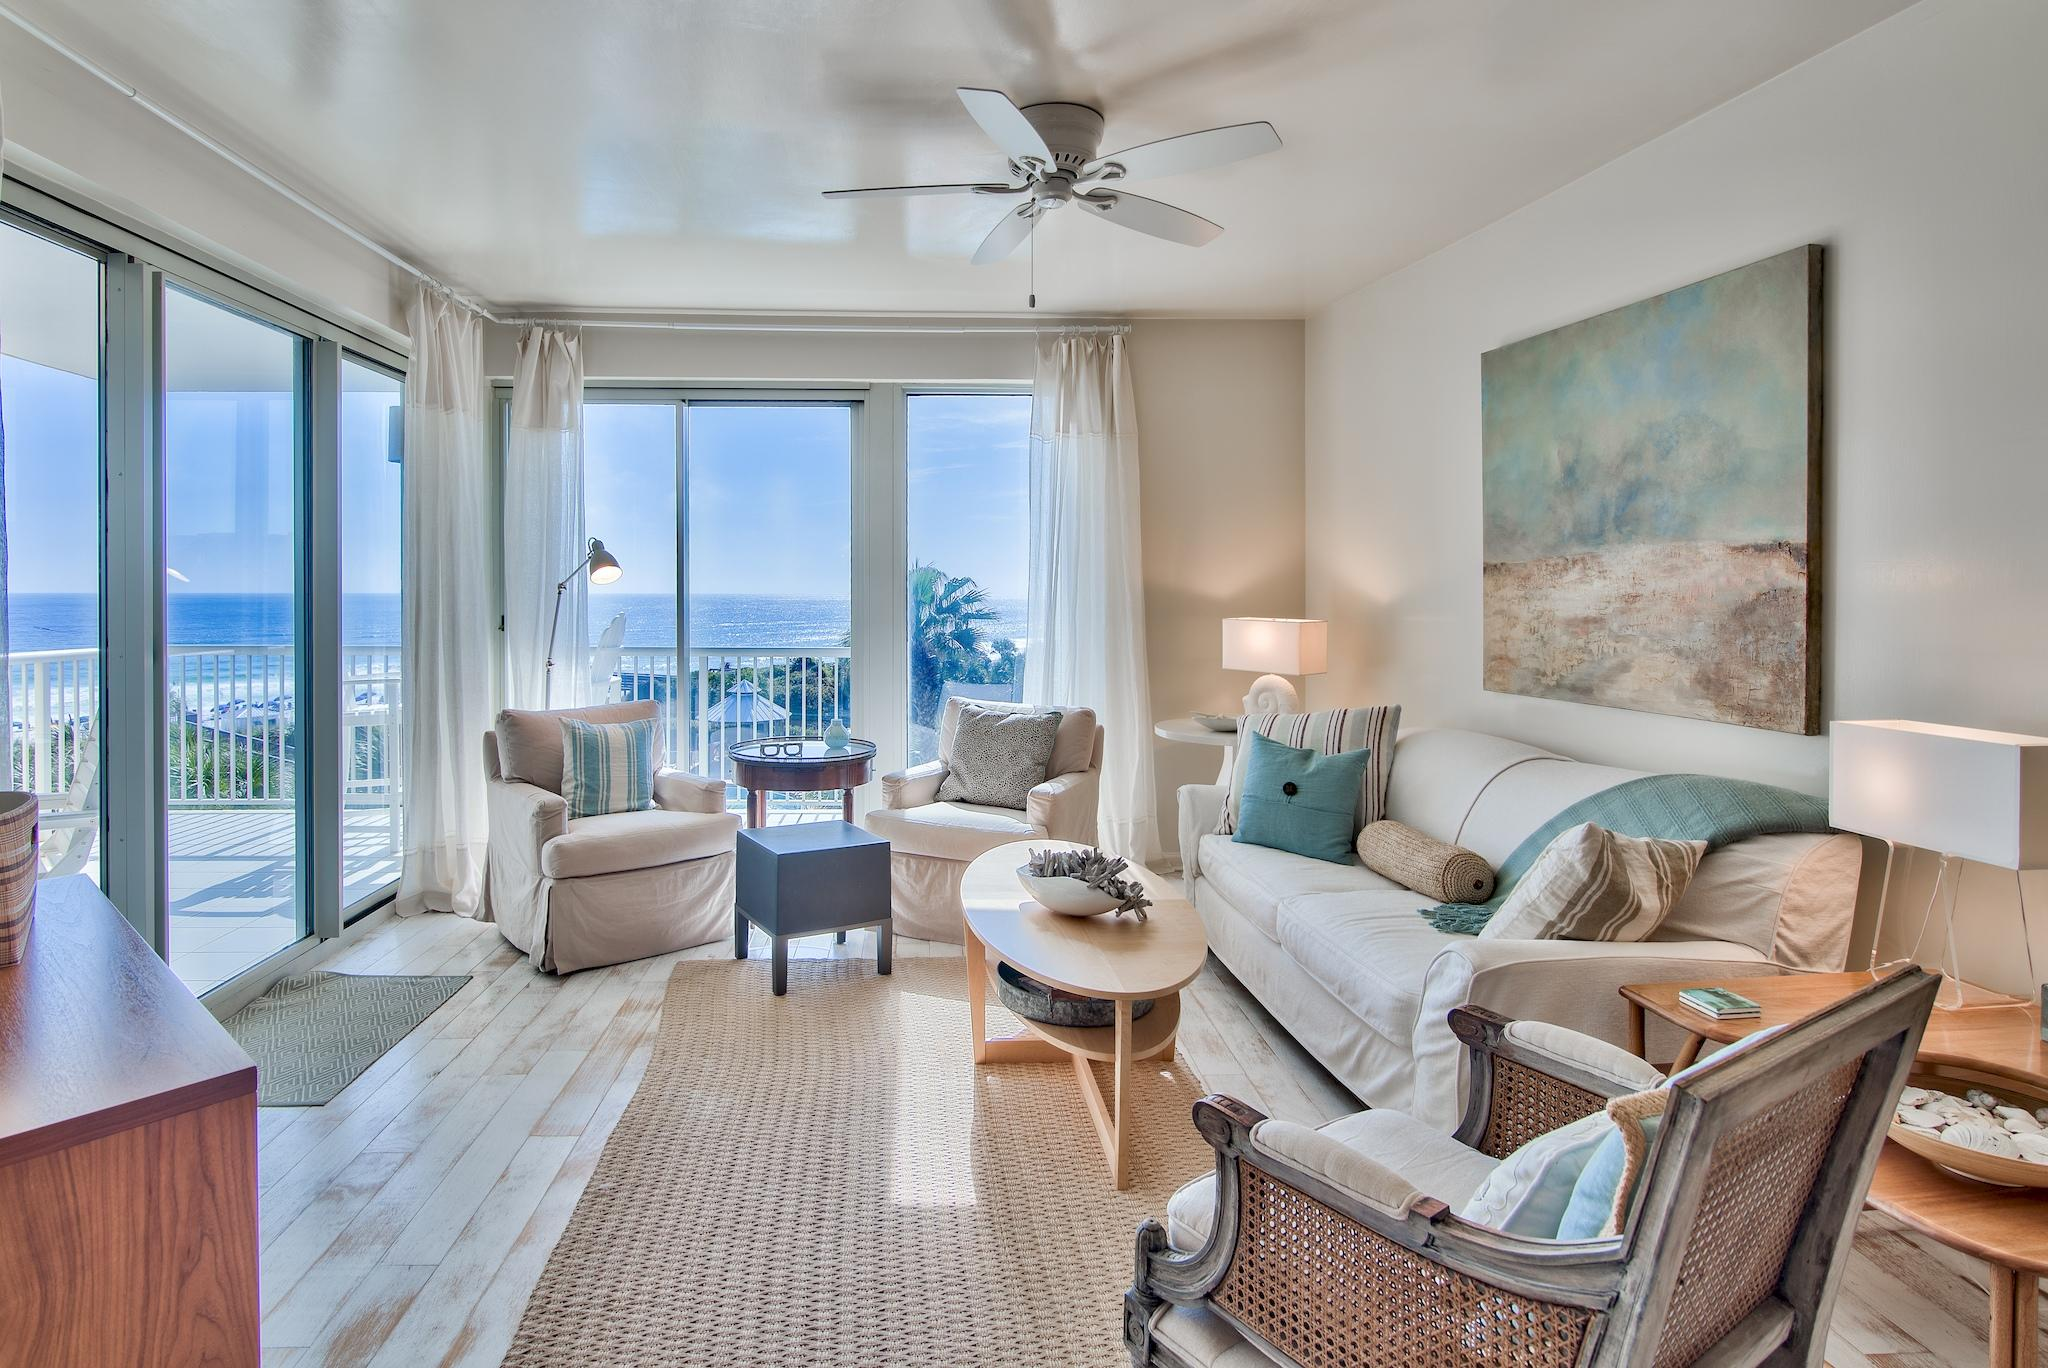 Phenomenal opportunity to own a Gulf front 2BR/2BA fully furnished unit at The Crescent! You'll enjoy prime views of the Gulf of Mexico from this 3rd floor unit. Upper floors are rarely available. Beautiful hardwood flooring extends throughout the unit with tile in the bathrooms. The open floor plan gives the unit a nice flow & there is true pride of ownership with every detail thought out including unique lighting, updated countertops and flooring and elegant coastal decor. The kitchen is generous in size & features opaque cabinets, stainless steel appliances, TV & a large breakfast bar. Capture views of the Gulf from the kitchen and dining area. The living area is very welcoming with panoramic views & a dreamy atmosphere. The large balcony is perfect for outdoor dining & entertaining! The Gulf front master bedroom is elegantly decorated and features a tray ceiling, direct access to the balcony, a large walk-in closet, and an en-suite bathroom. The master bath features a double vanity, soaking tub, and a separate walk-in shower. The guest bedroom offers two twin beds, an en suite bathroom, and is located at the front of the unit allowing the master bedroom extra privacy at the back of the unit. Unit 309 has a full-size stackable washer & dryer for convenience. Cabinets were recently repainted and the unit has been impeccably maintained. There is good storage in the unit and an additional storage cage great for your beach gear.   The Crescent is an exclusive Gulf front condominium located on the famed beaches of Miramar Beach and is close to dining, shopping & other attractions. Come discover for yourself the many hidden treasures of The Crescent including a 4,500 sq. ft. lagoon pool that is heated seasonally, a second smaller pool, hot tub, fitness center, conference facility, gated access & parking, and the convenience of an on-site reservation desk for your guests. There is a private gated boardwalk and designated beach with seasonal beach service. Start living the coastal lifestyle and relax on the beach, go paddle boarding, or take a walk or bike ride on the pedestrian path that runs all the way down Scenic 98. Enjoy fresh fish tacos and a cold beverage next door at Surf Hut, a favorite restaurant in the area. There is also a CVS and grocery store down the street and Silver Sands Premium Outlets. You have everything you need within reach. Don't miss out on this incredible opportunity to own a top tier unit at The Crescent, as 3rd & 4th floor units rarely come on the market!